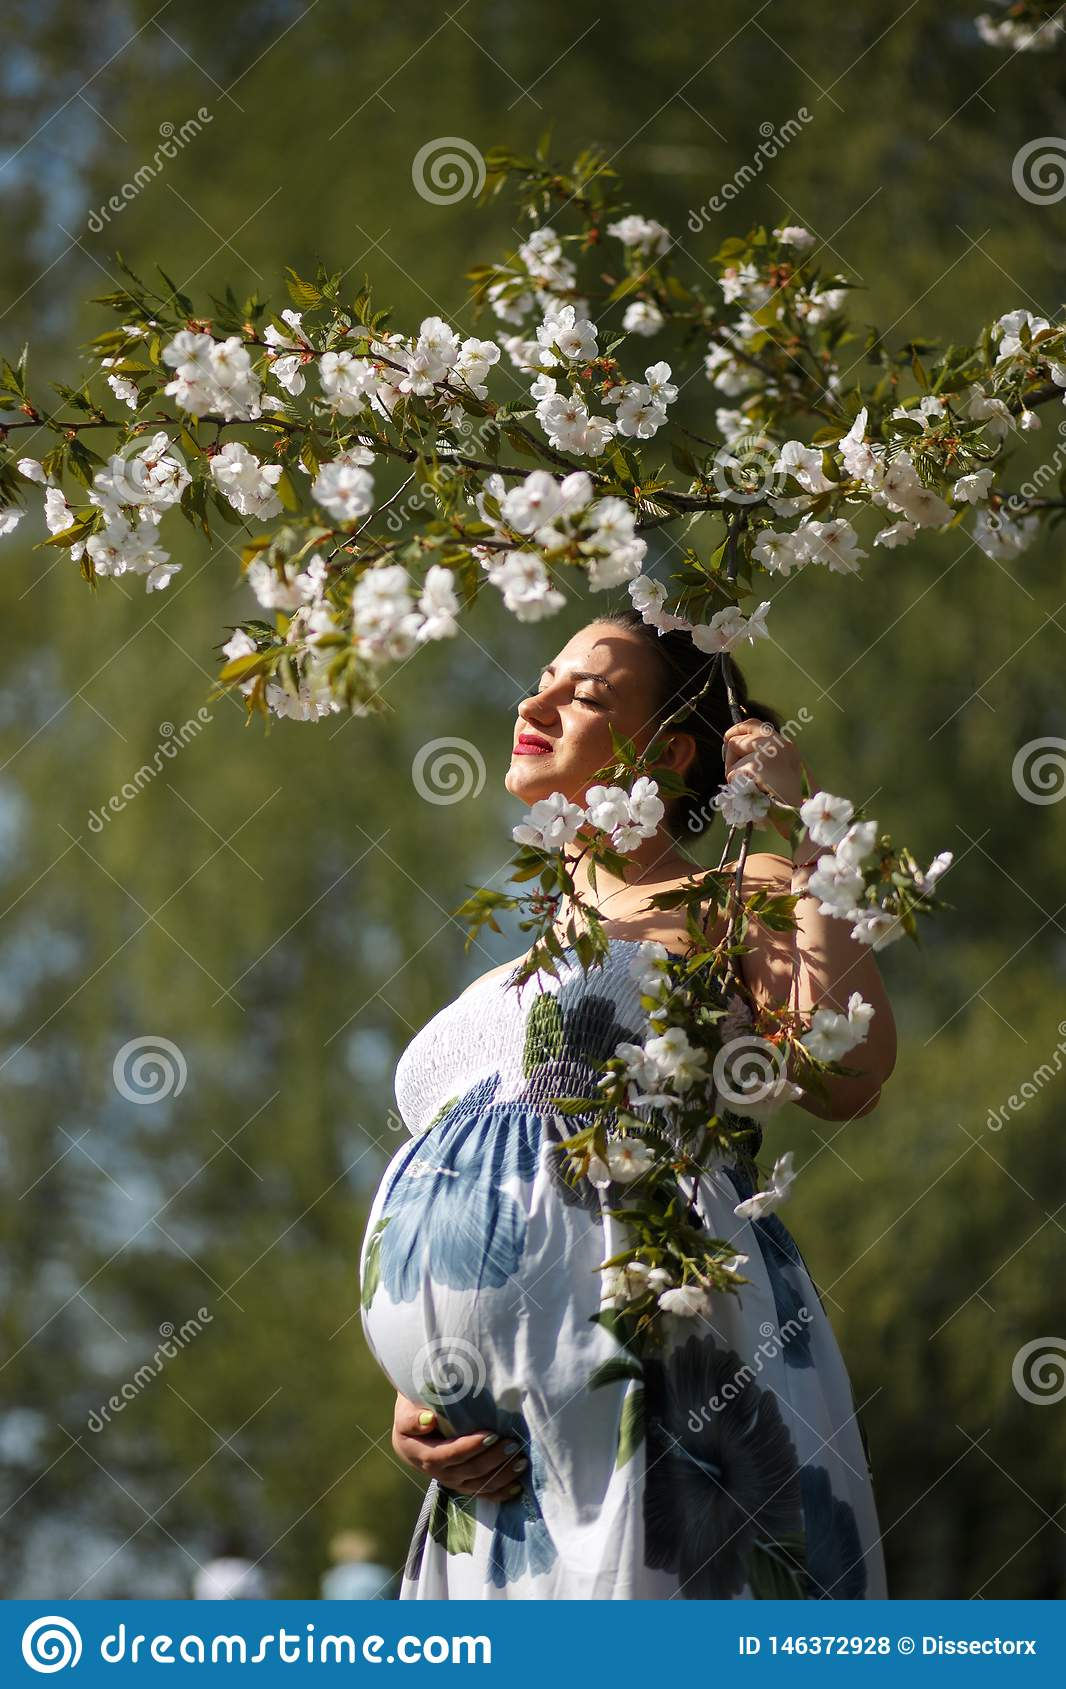 Happy young soon to be mother mom - Young traveler pregnant woman enjoys her leisure free time in a park with blossoming